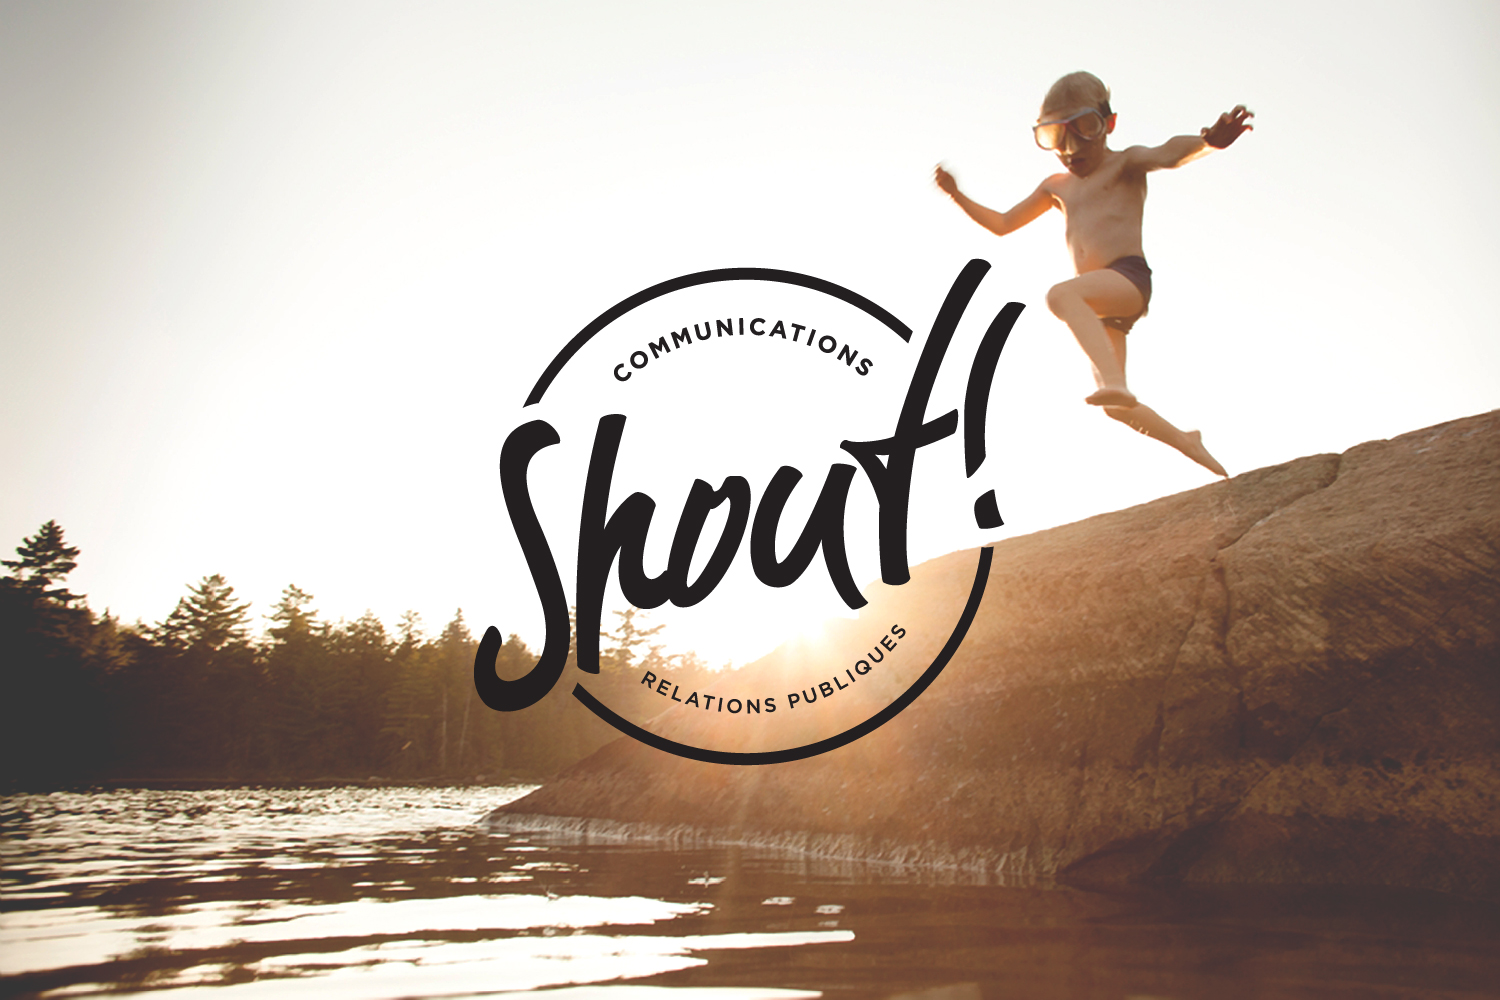 shout communications logo design over image of kid jumping in lake, circle logomark, handwriting font, casual, branding, public relations agency